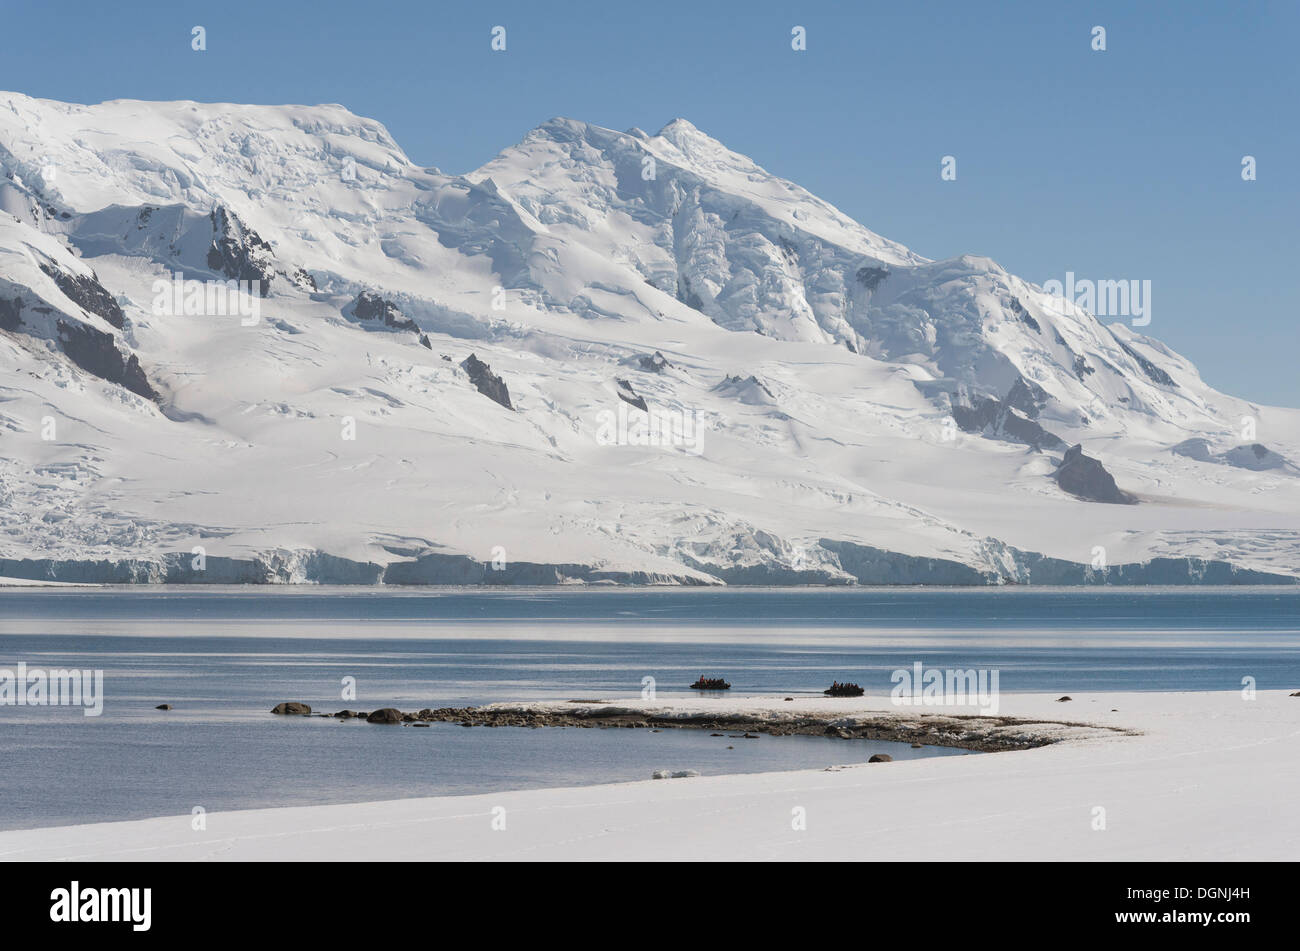 Zodiac inflatable boats between Half Moon Island, front, and Livingston Iceland, rear, Südliche Shetlandinseln, Antarctica - Stock Image